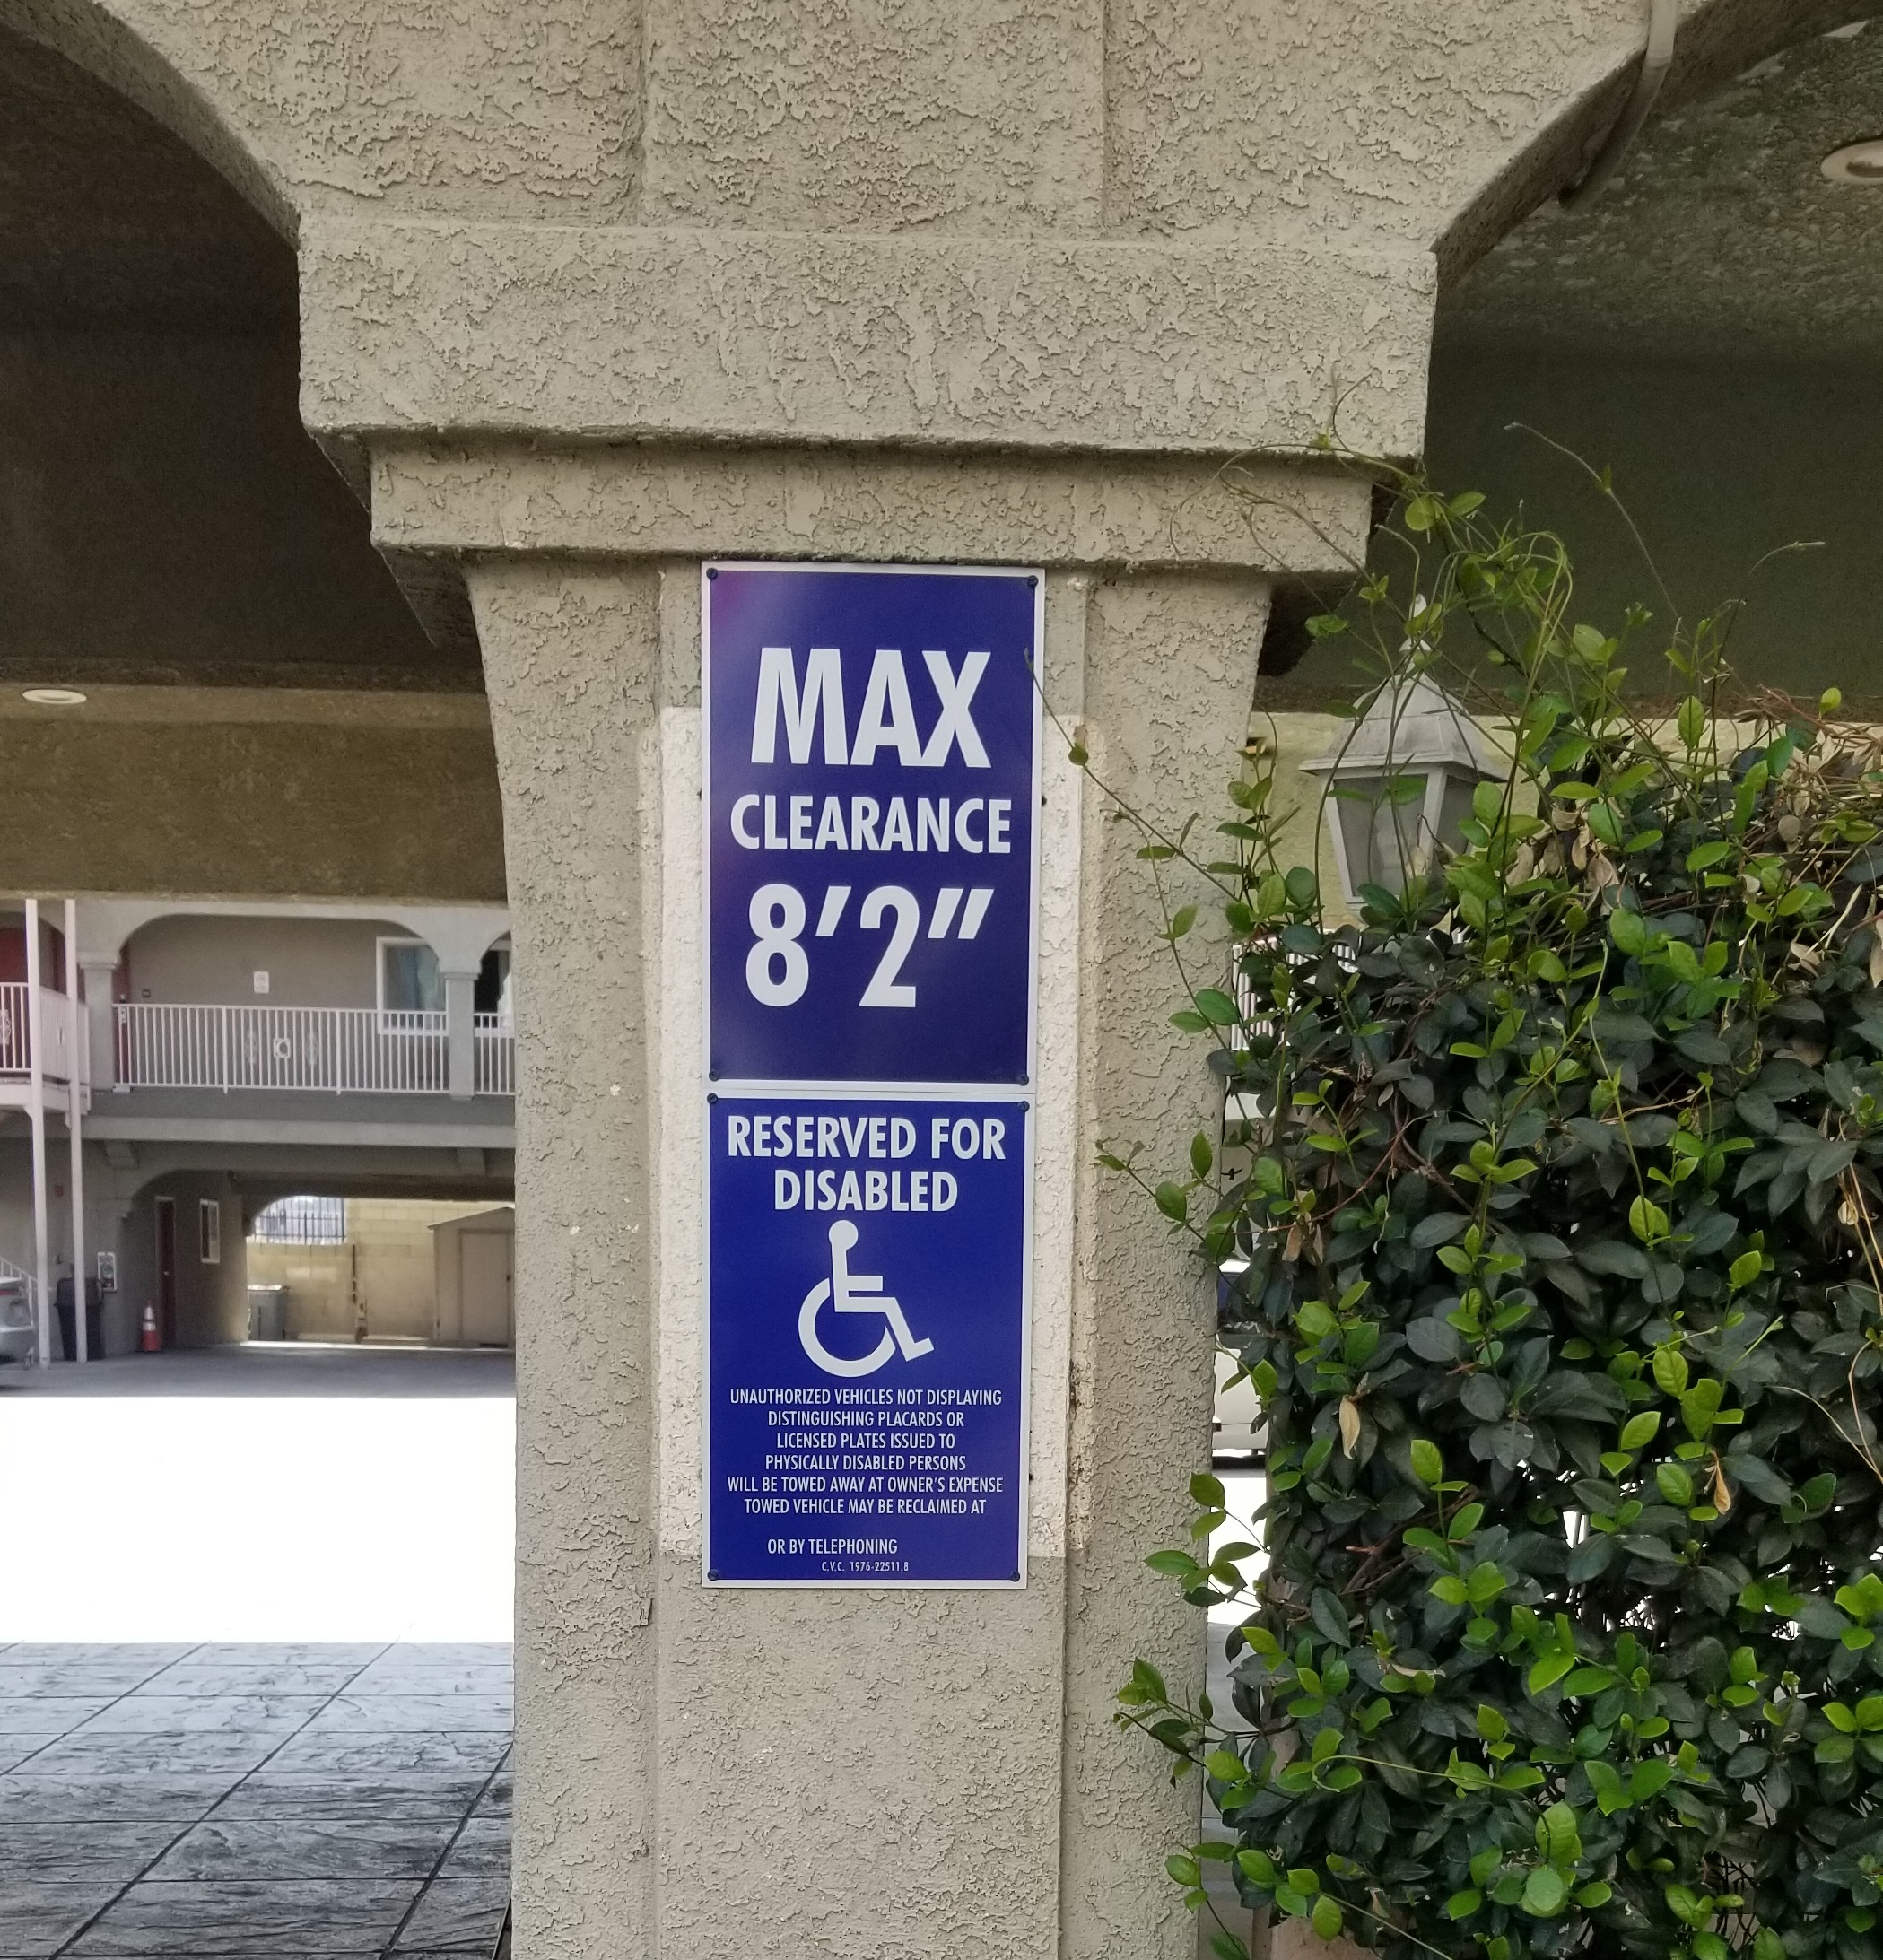 This set is part of the parking lot sign package we made for Colony Inn. With these the North Hollywood hotel will ensure the safety and convenience of motorists using their parking space.